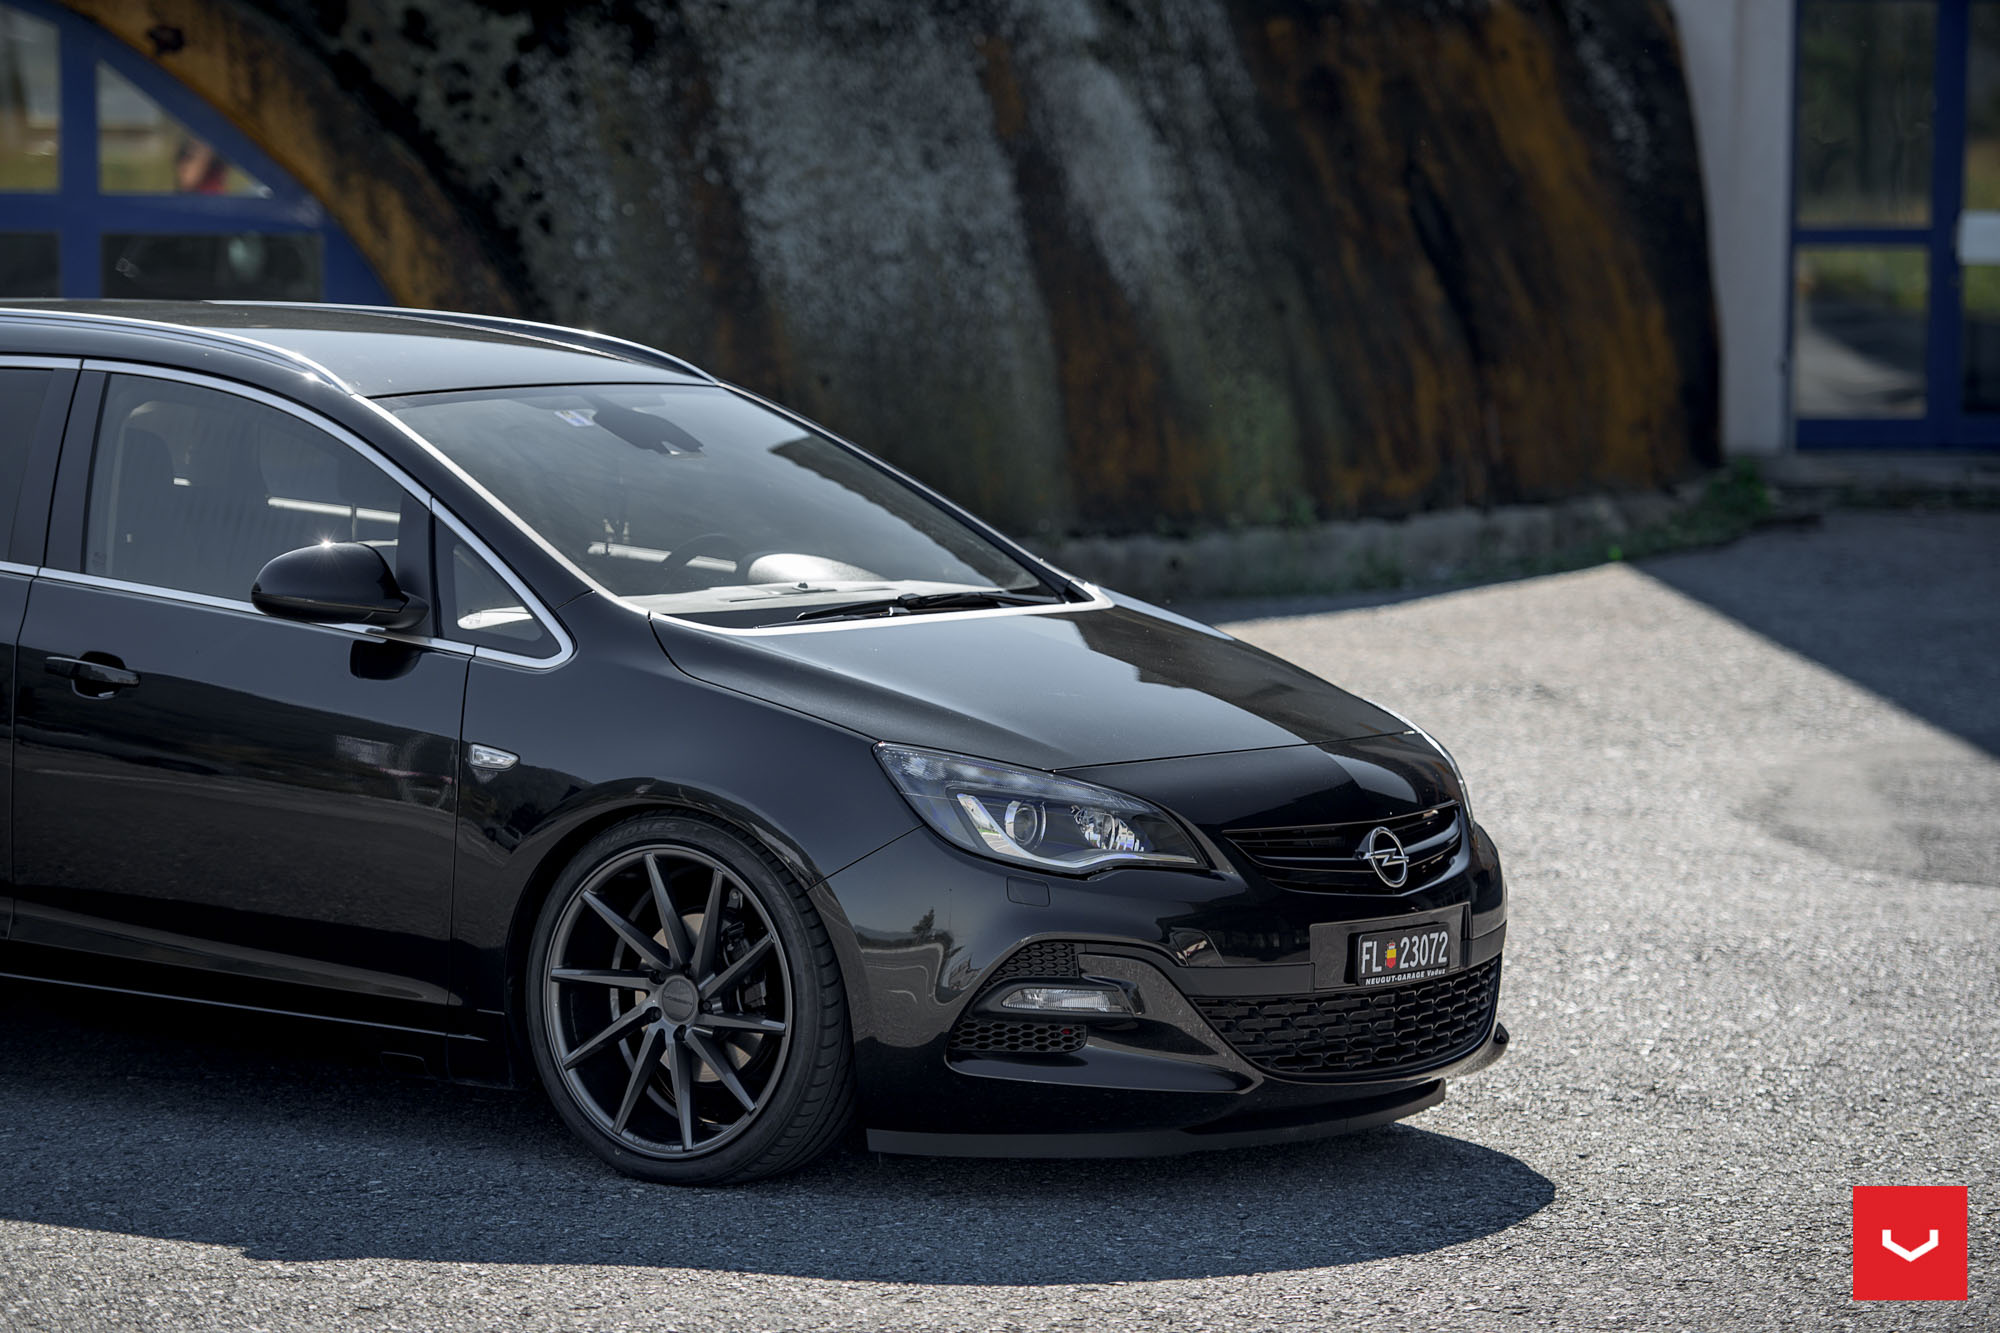 opel astra j wagon doubles its value with vossen cvt wheels autoevolution. Black Bedroom Furniture Sets. Home Design Ideas